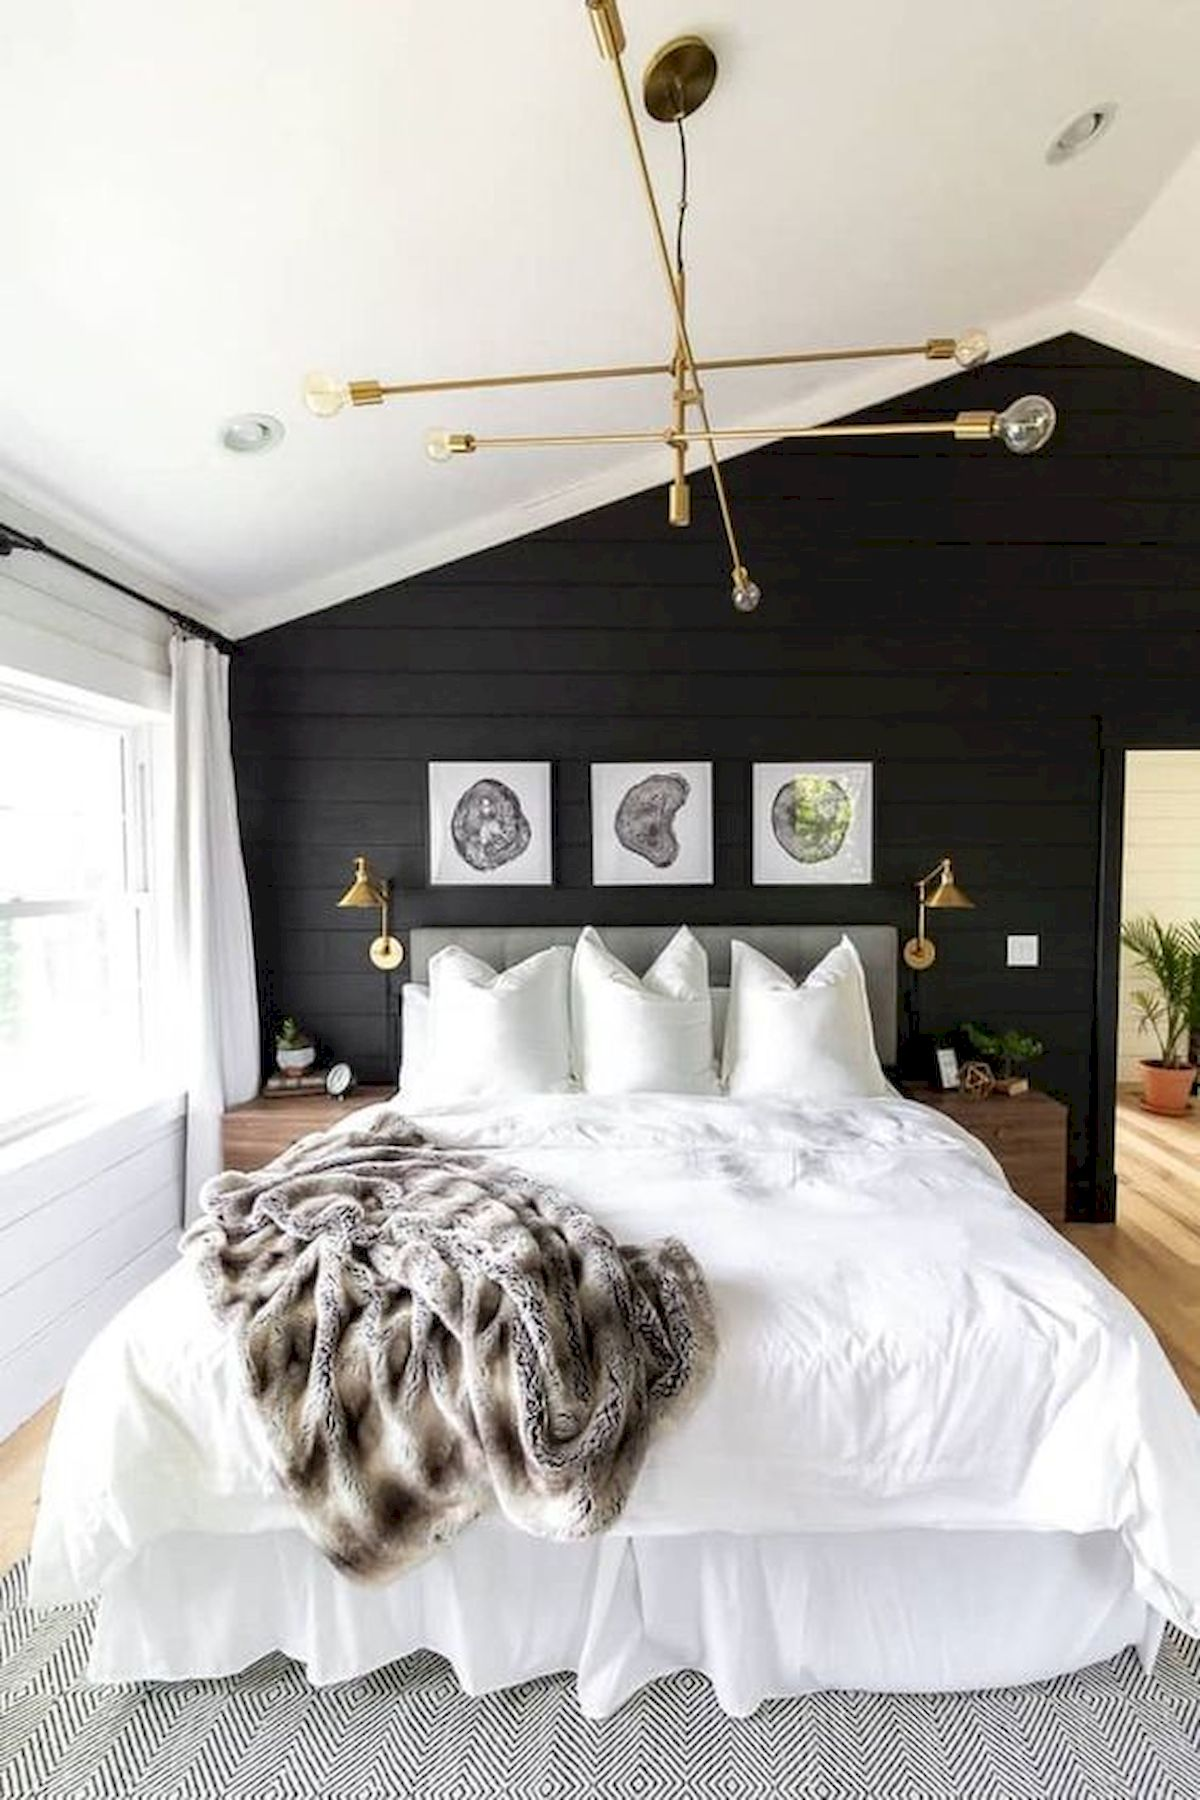 44 Awesome White Master Bedroom Design and Decor Ideas For Any Home Design (25)